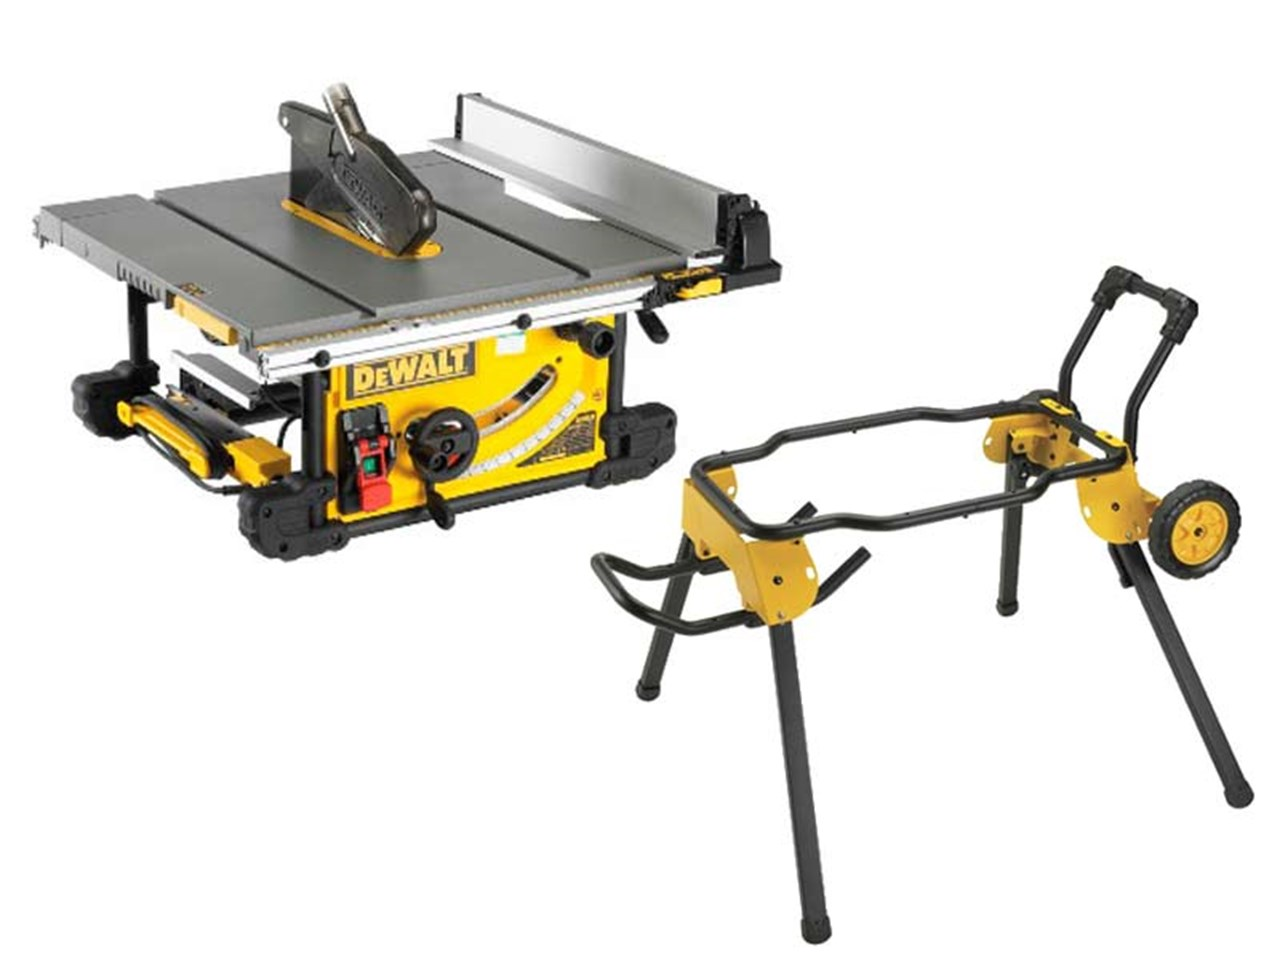 Dewalt dwe7491ldwe74911 110v 250mm table saw and rolling for 110v table saw